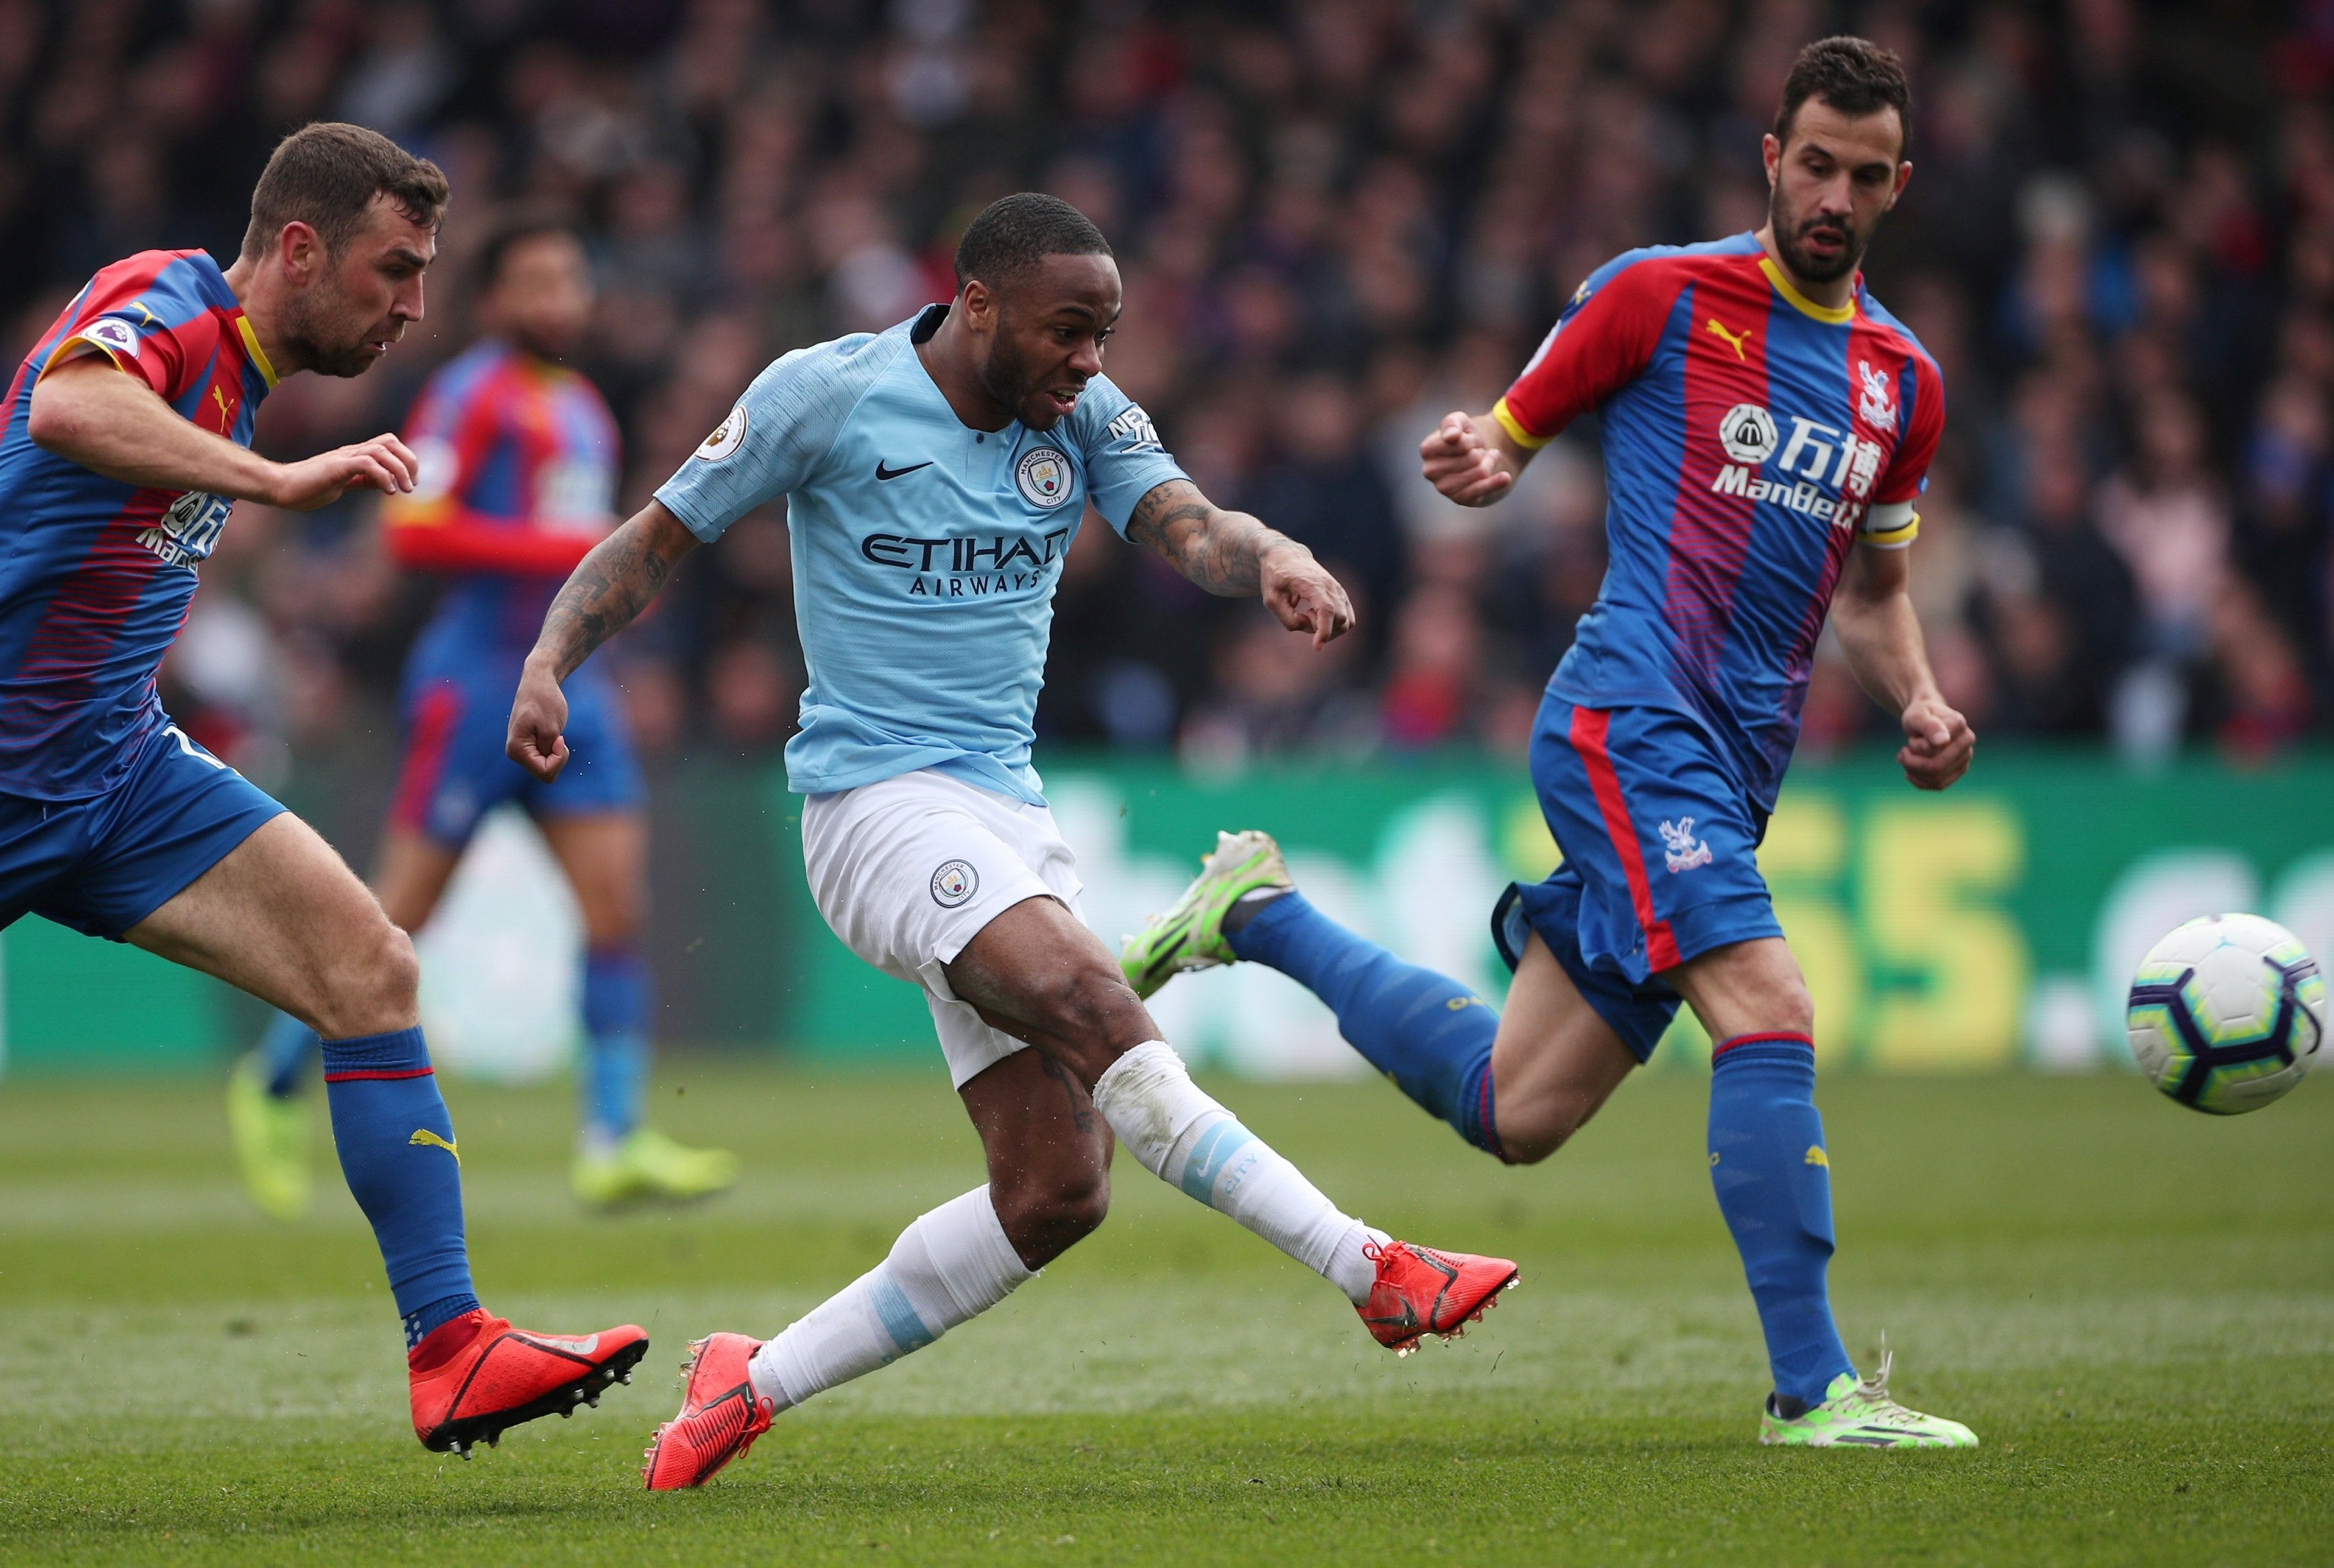 Crystal Palace vs Manchester City Live Stream: How to watch on TV or online